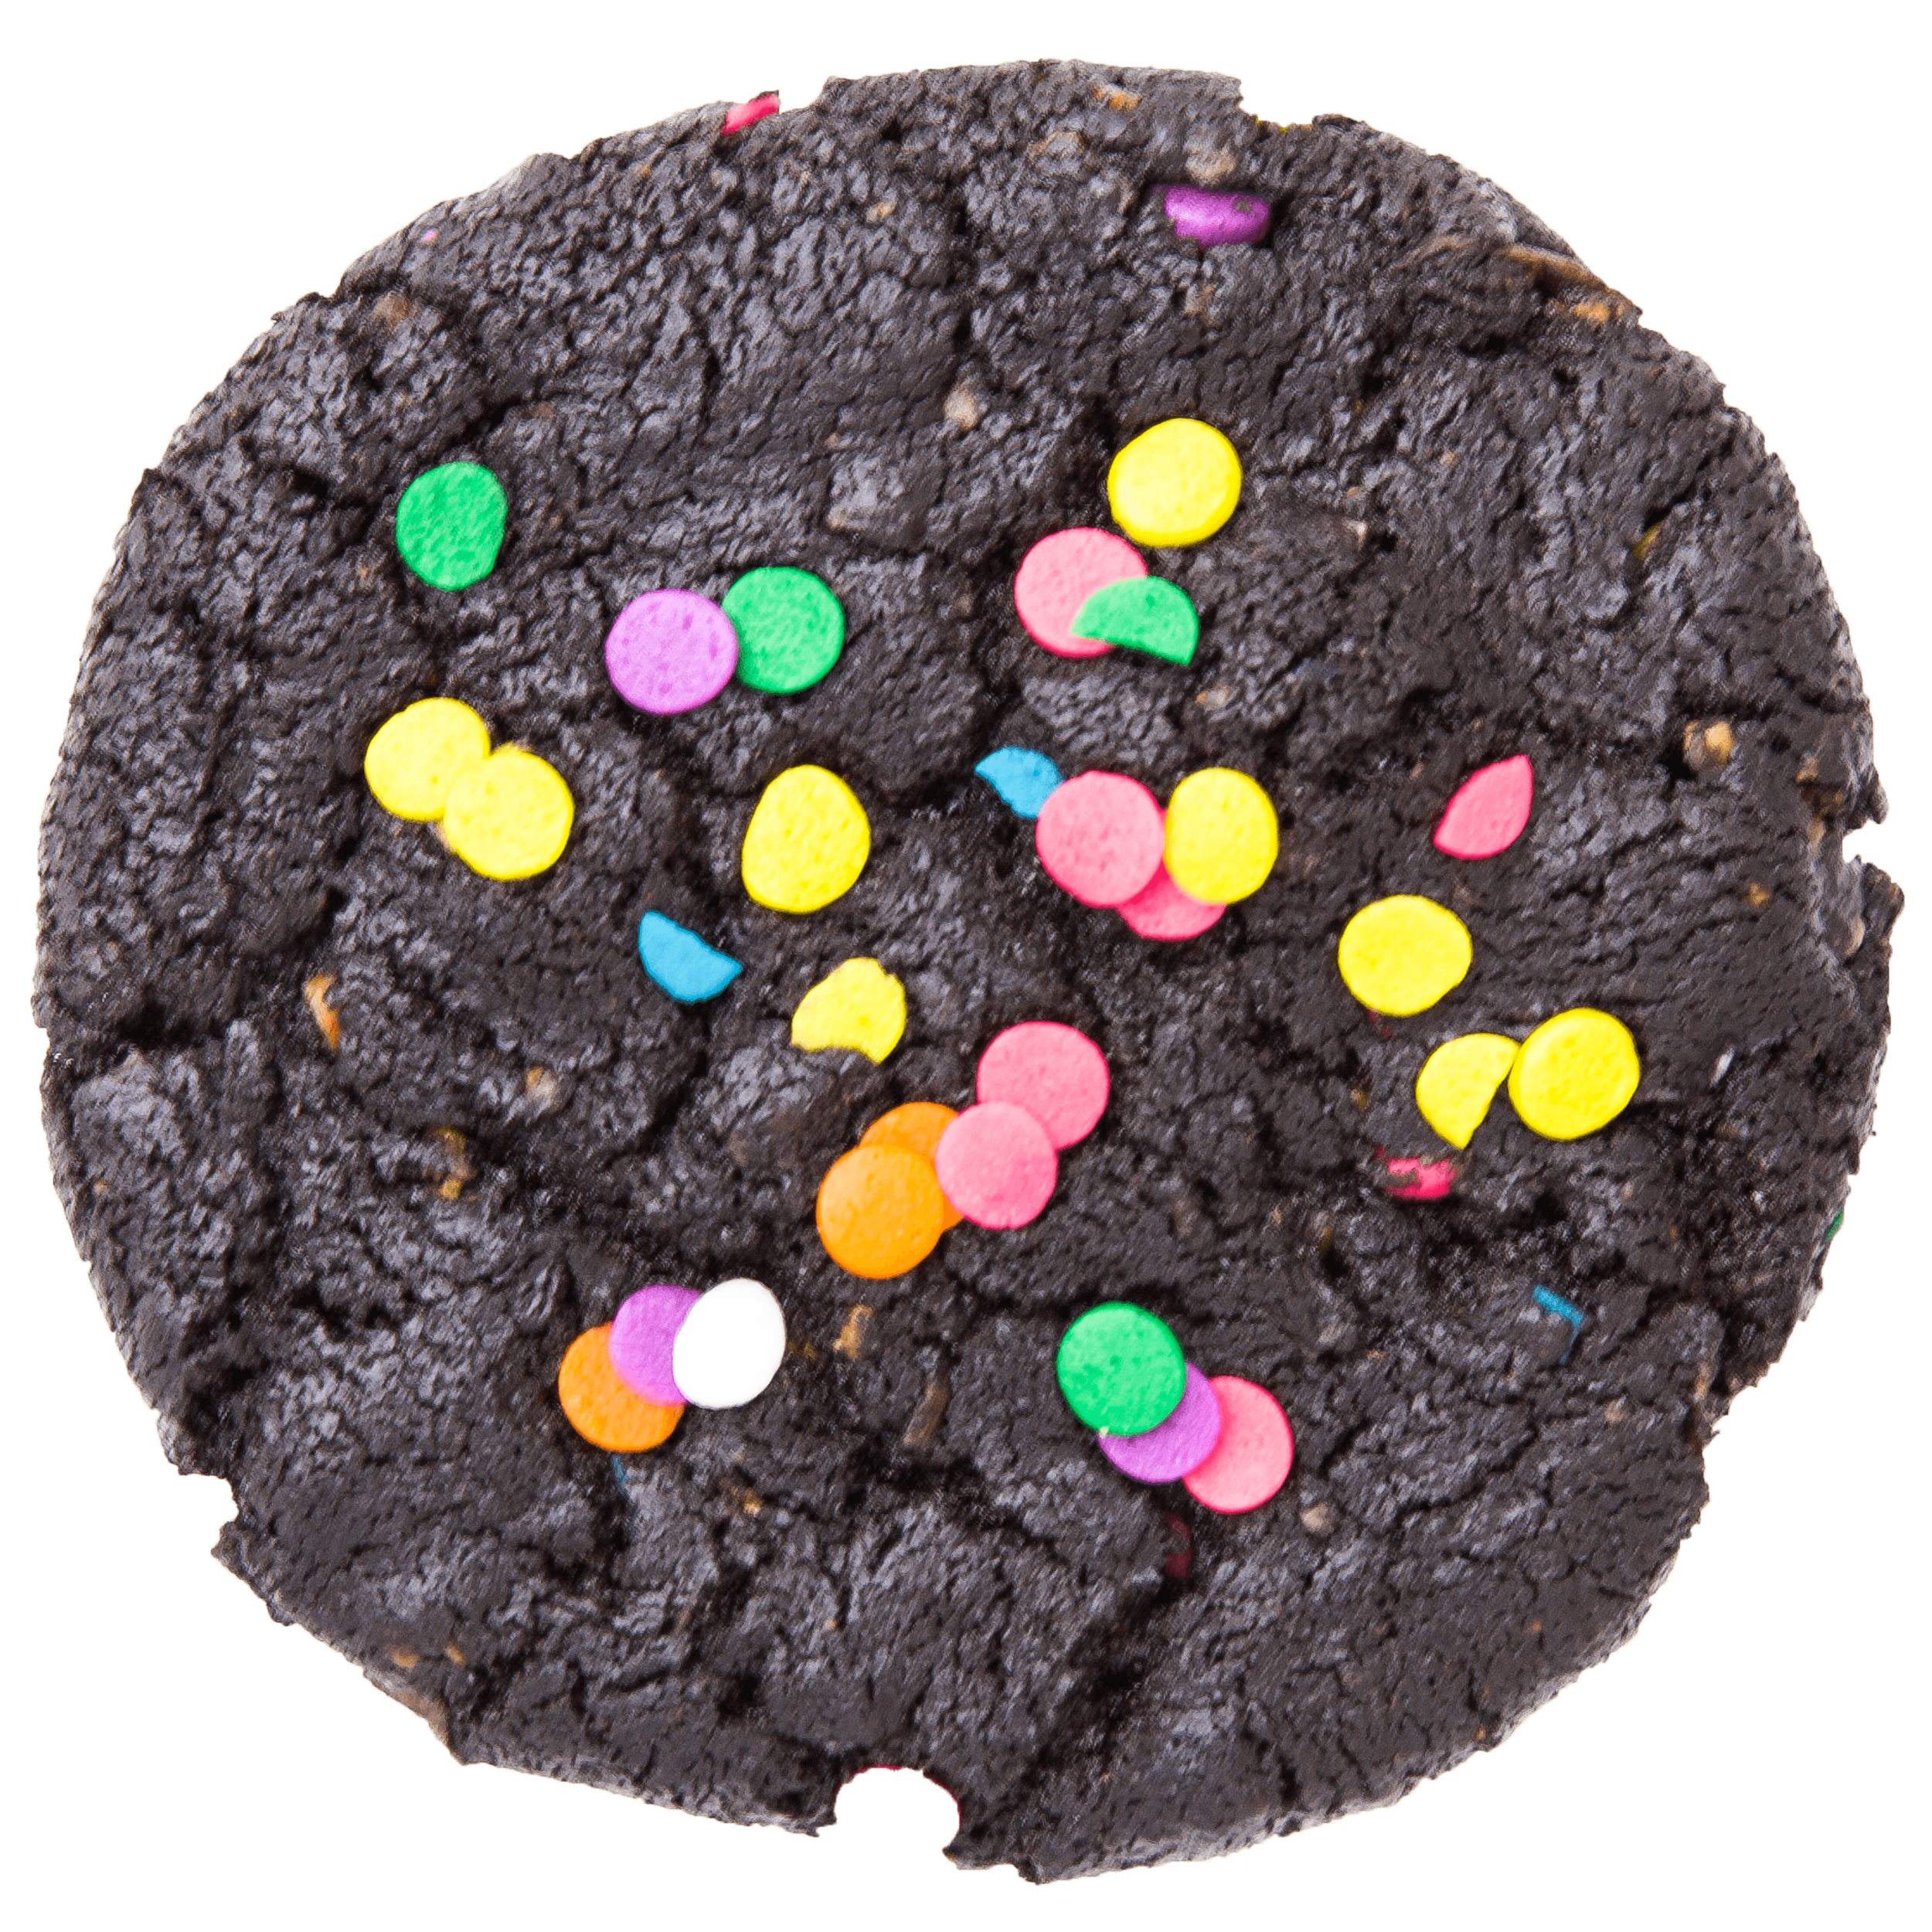 Cookie flavor 13 transparent.png